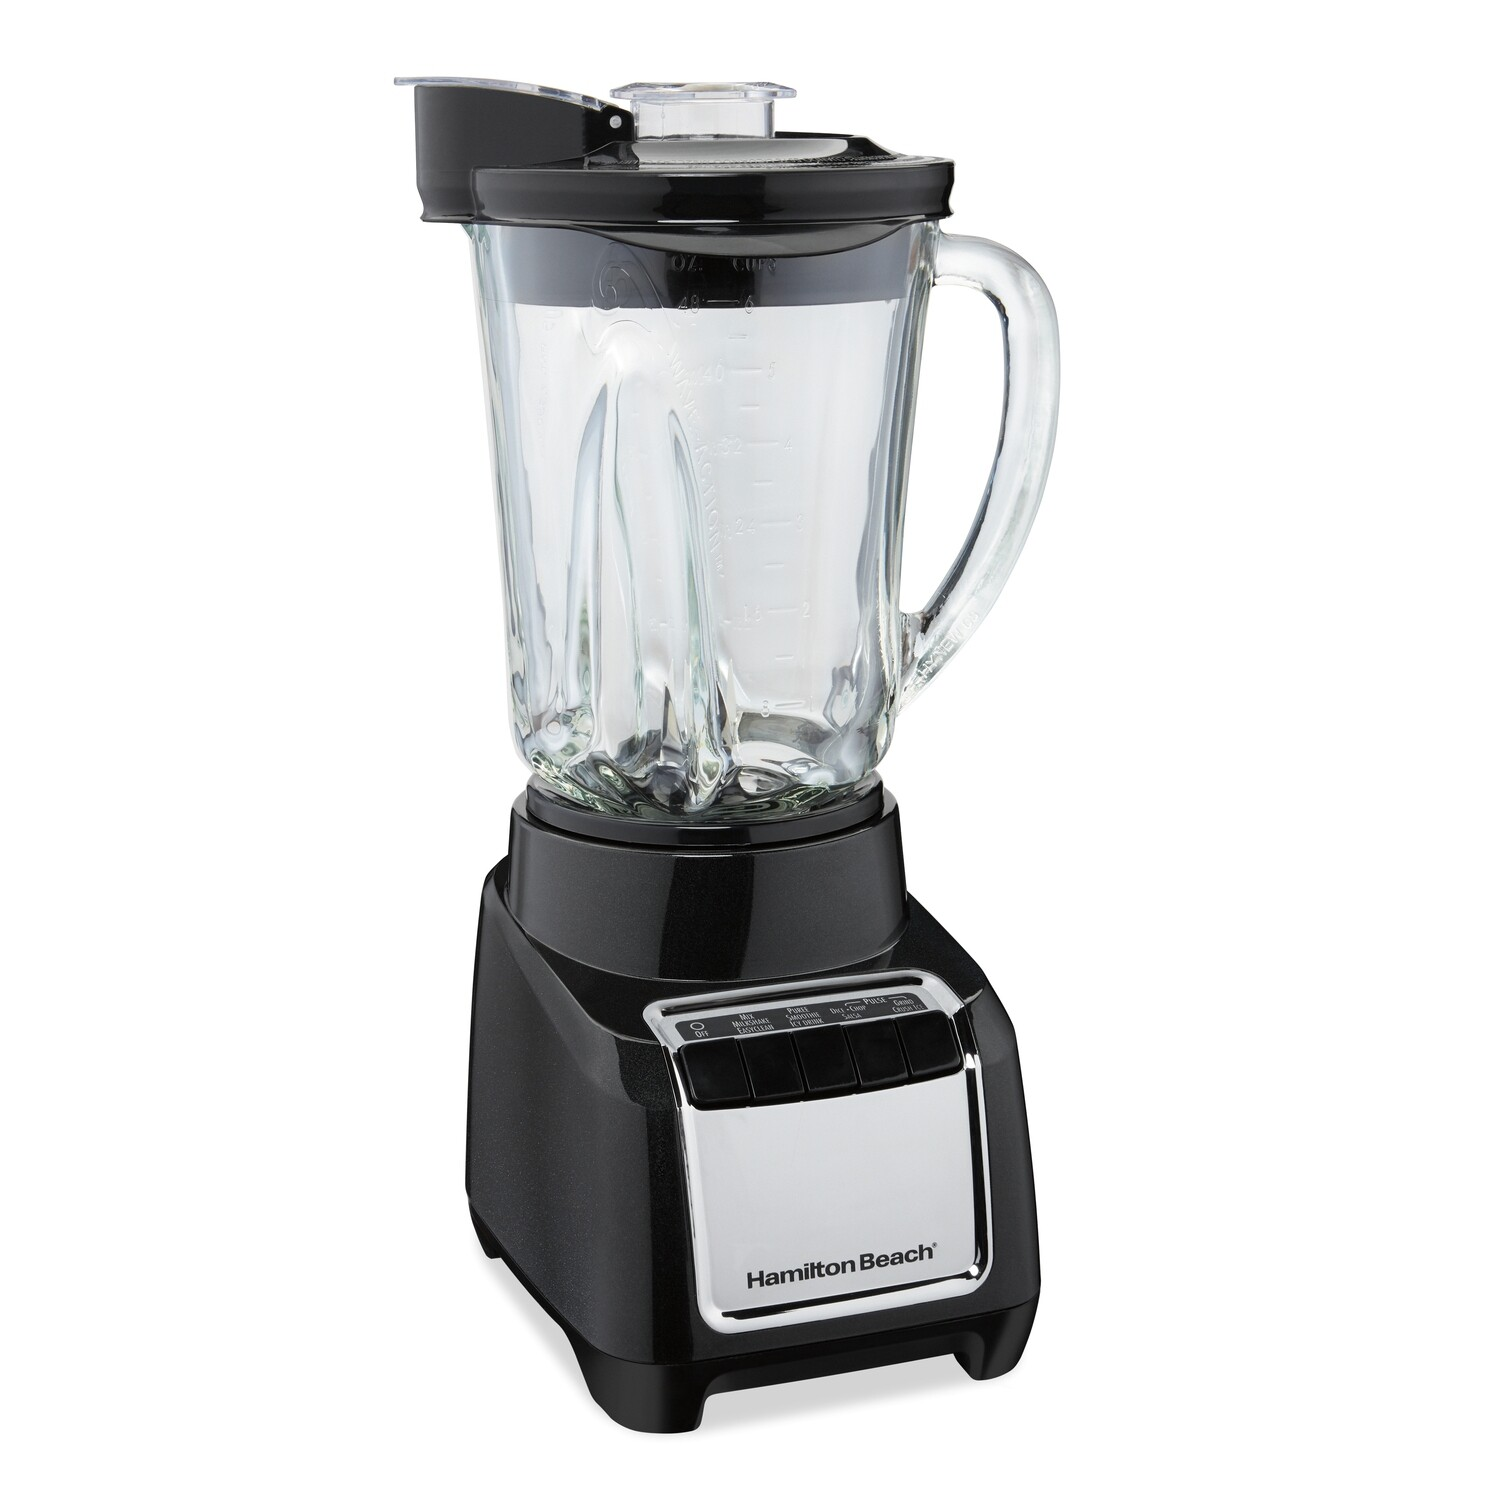 CE-331 LICUADORA Hamilton Beach Wave-Action Blender 700 W NEGRA| Model# 53521